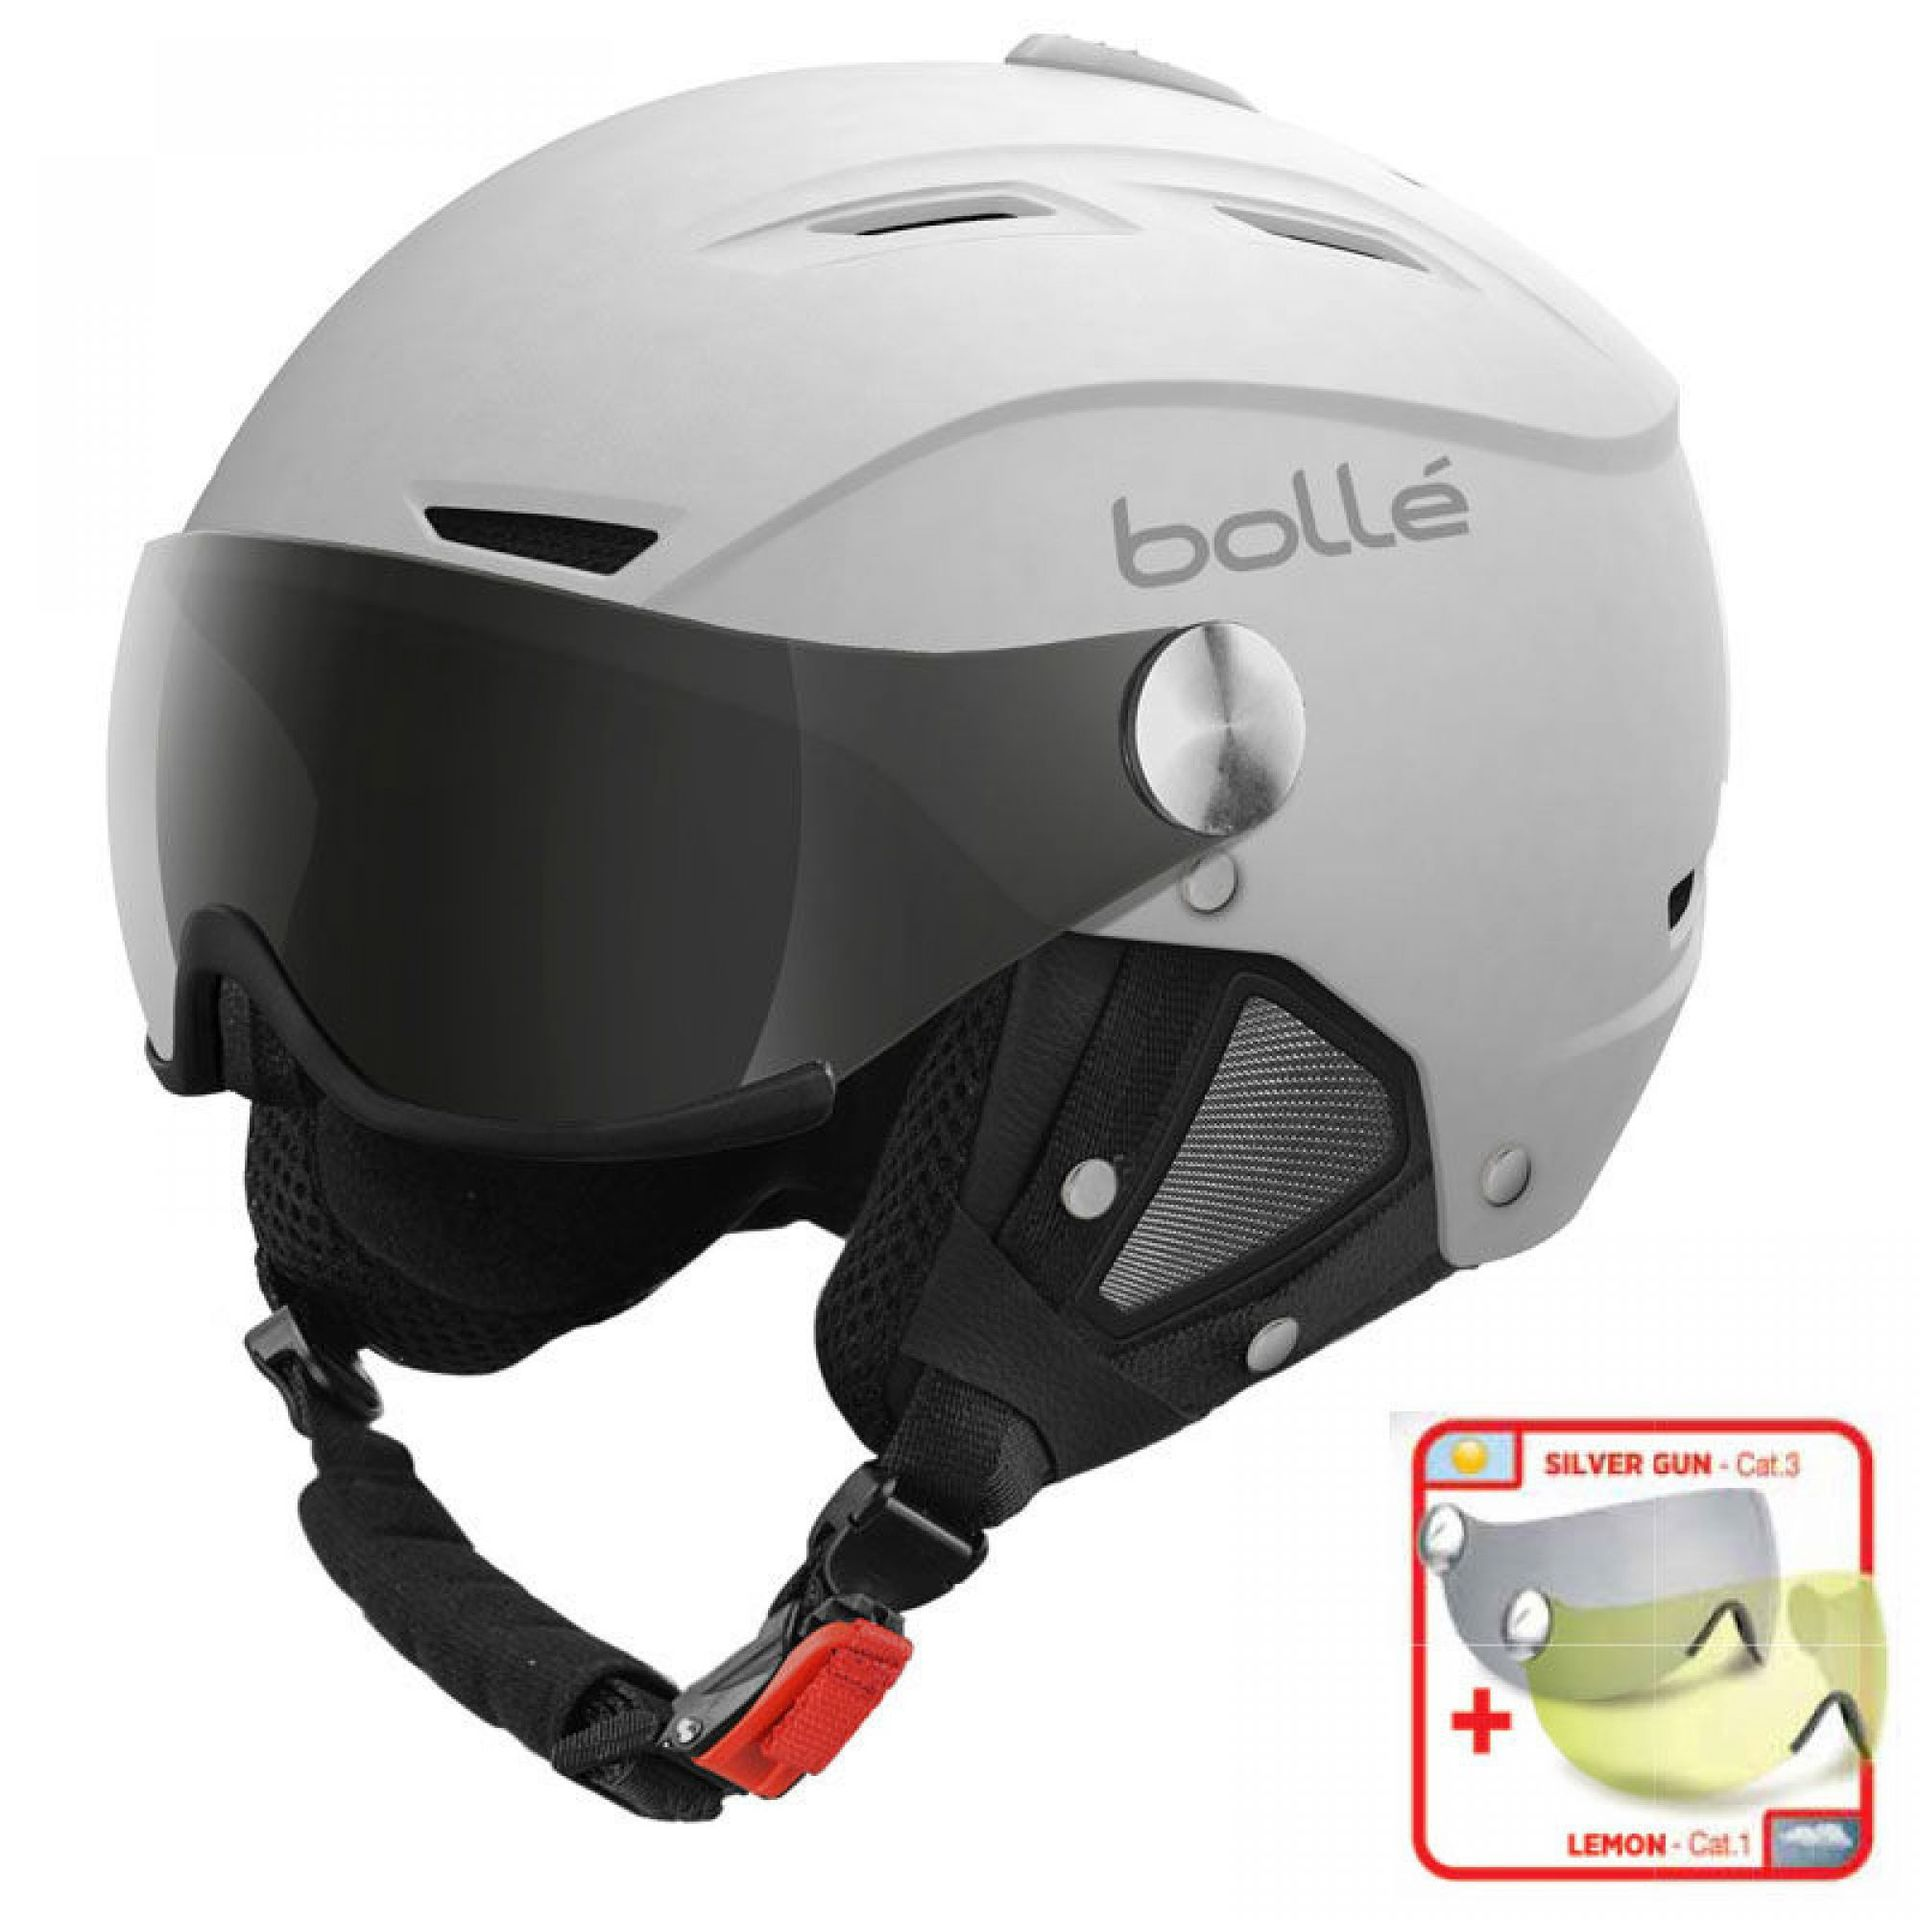 KASK BOLLE BACKLINE VISOR SOFT WHITE